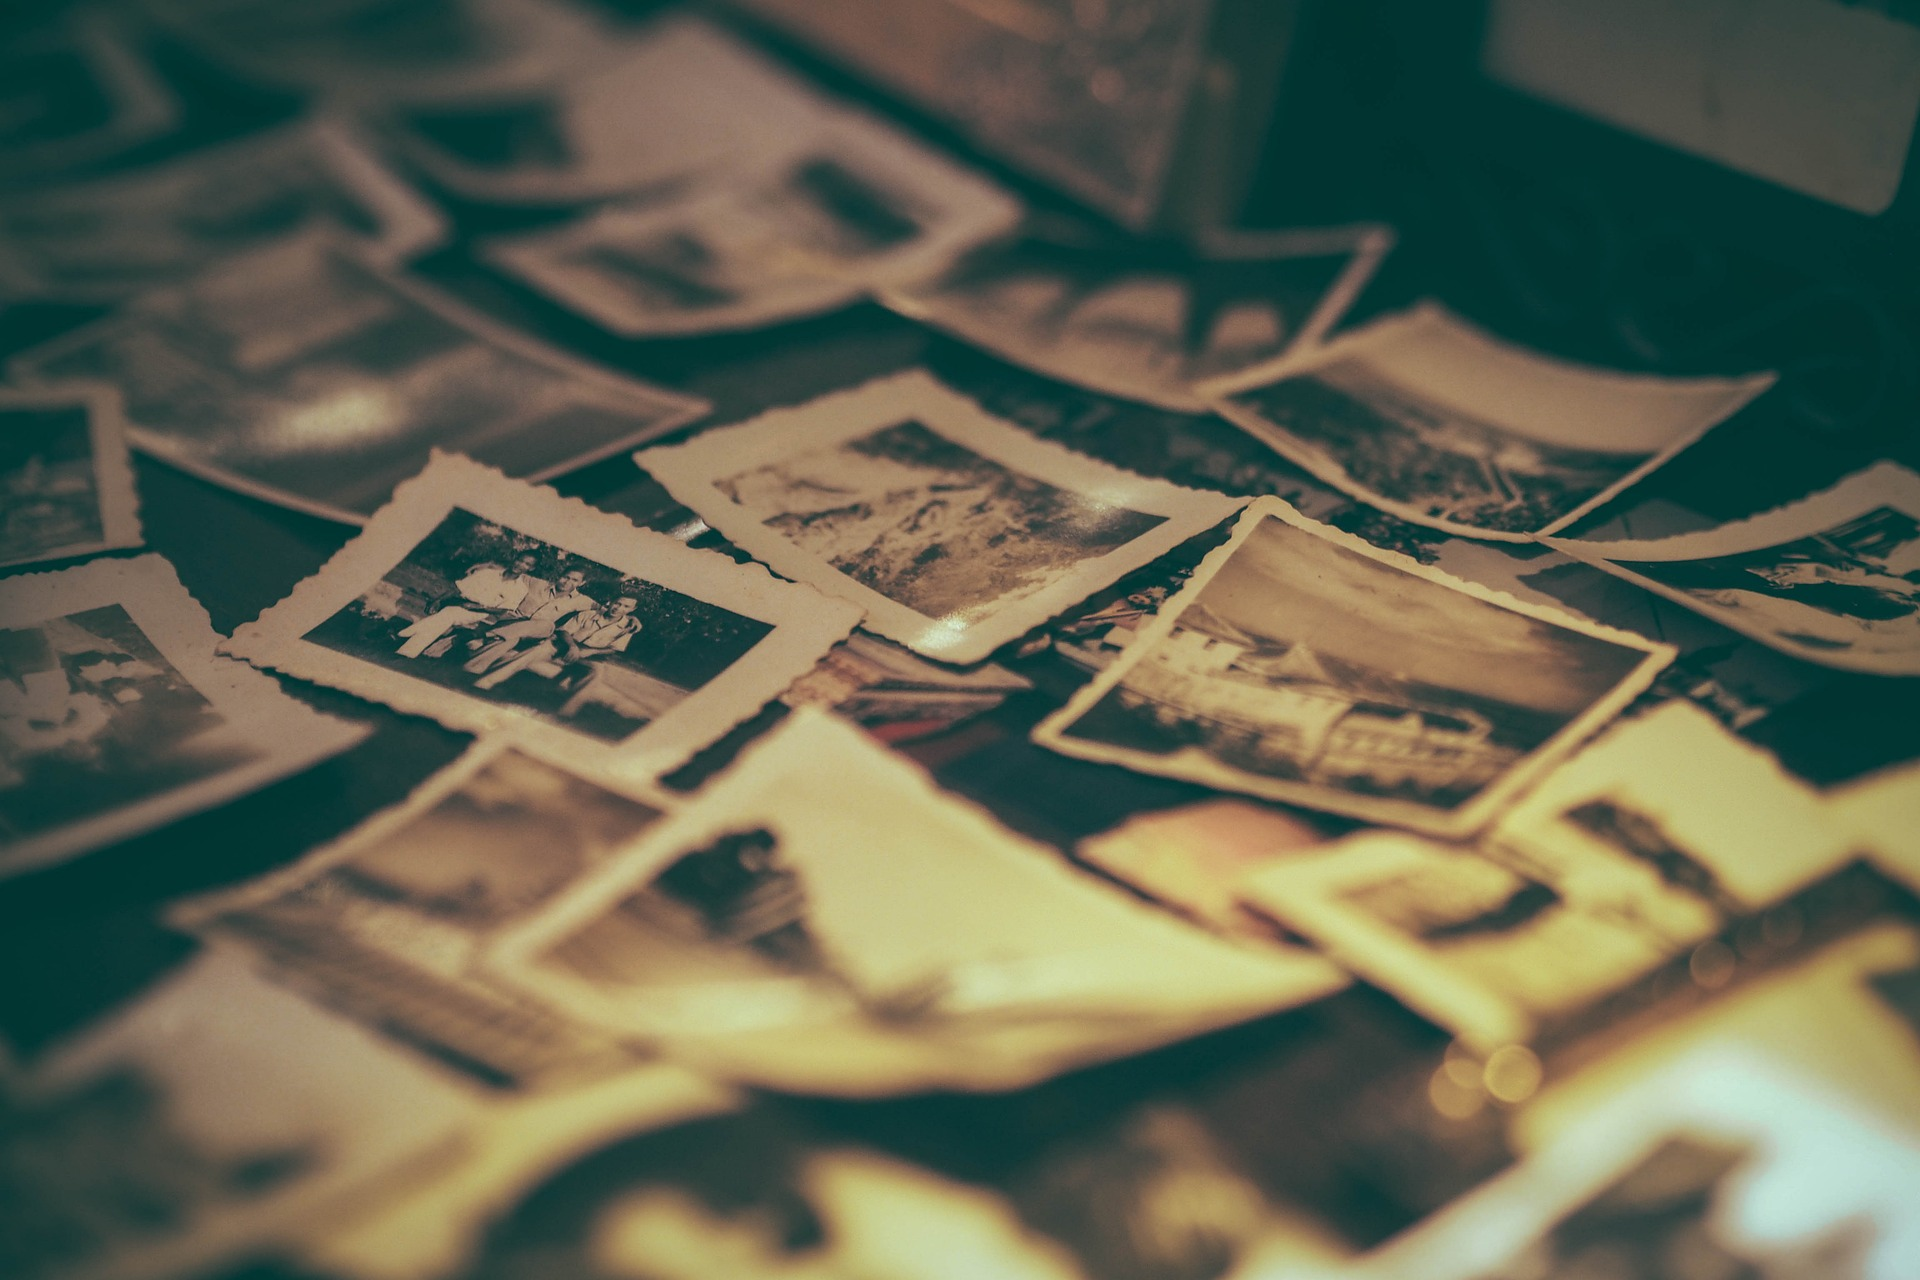 Lots of old photos - time to get these organized and digitized. Photo source: pixabay.com